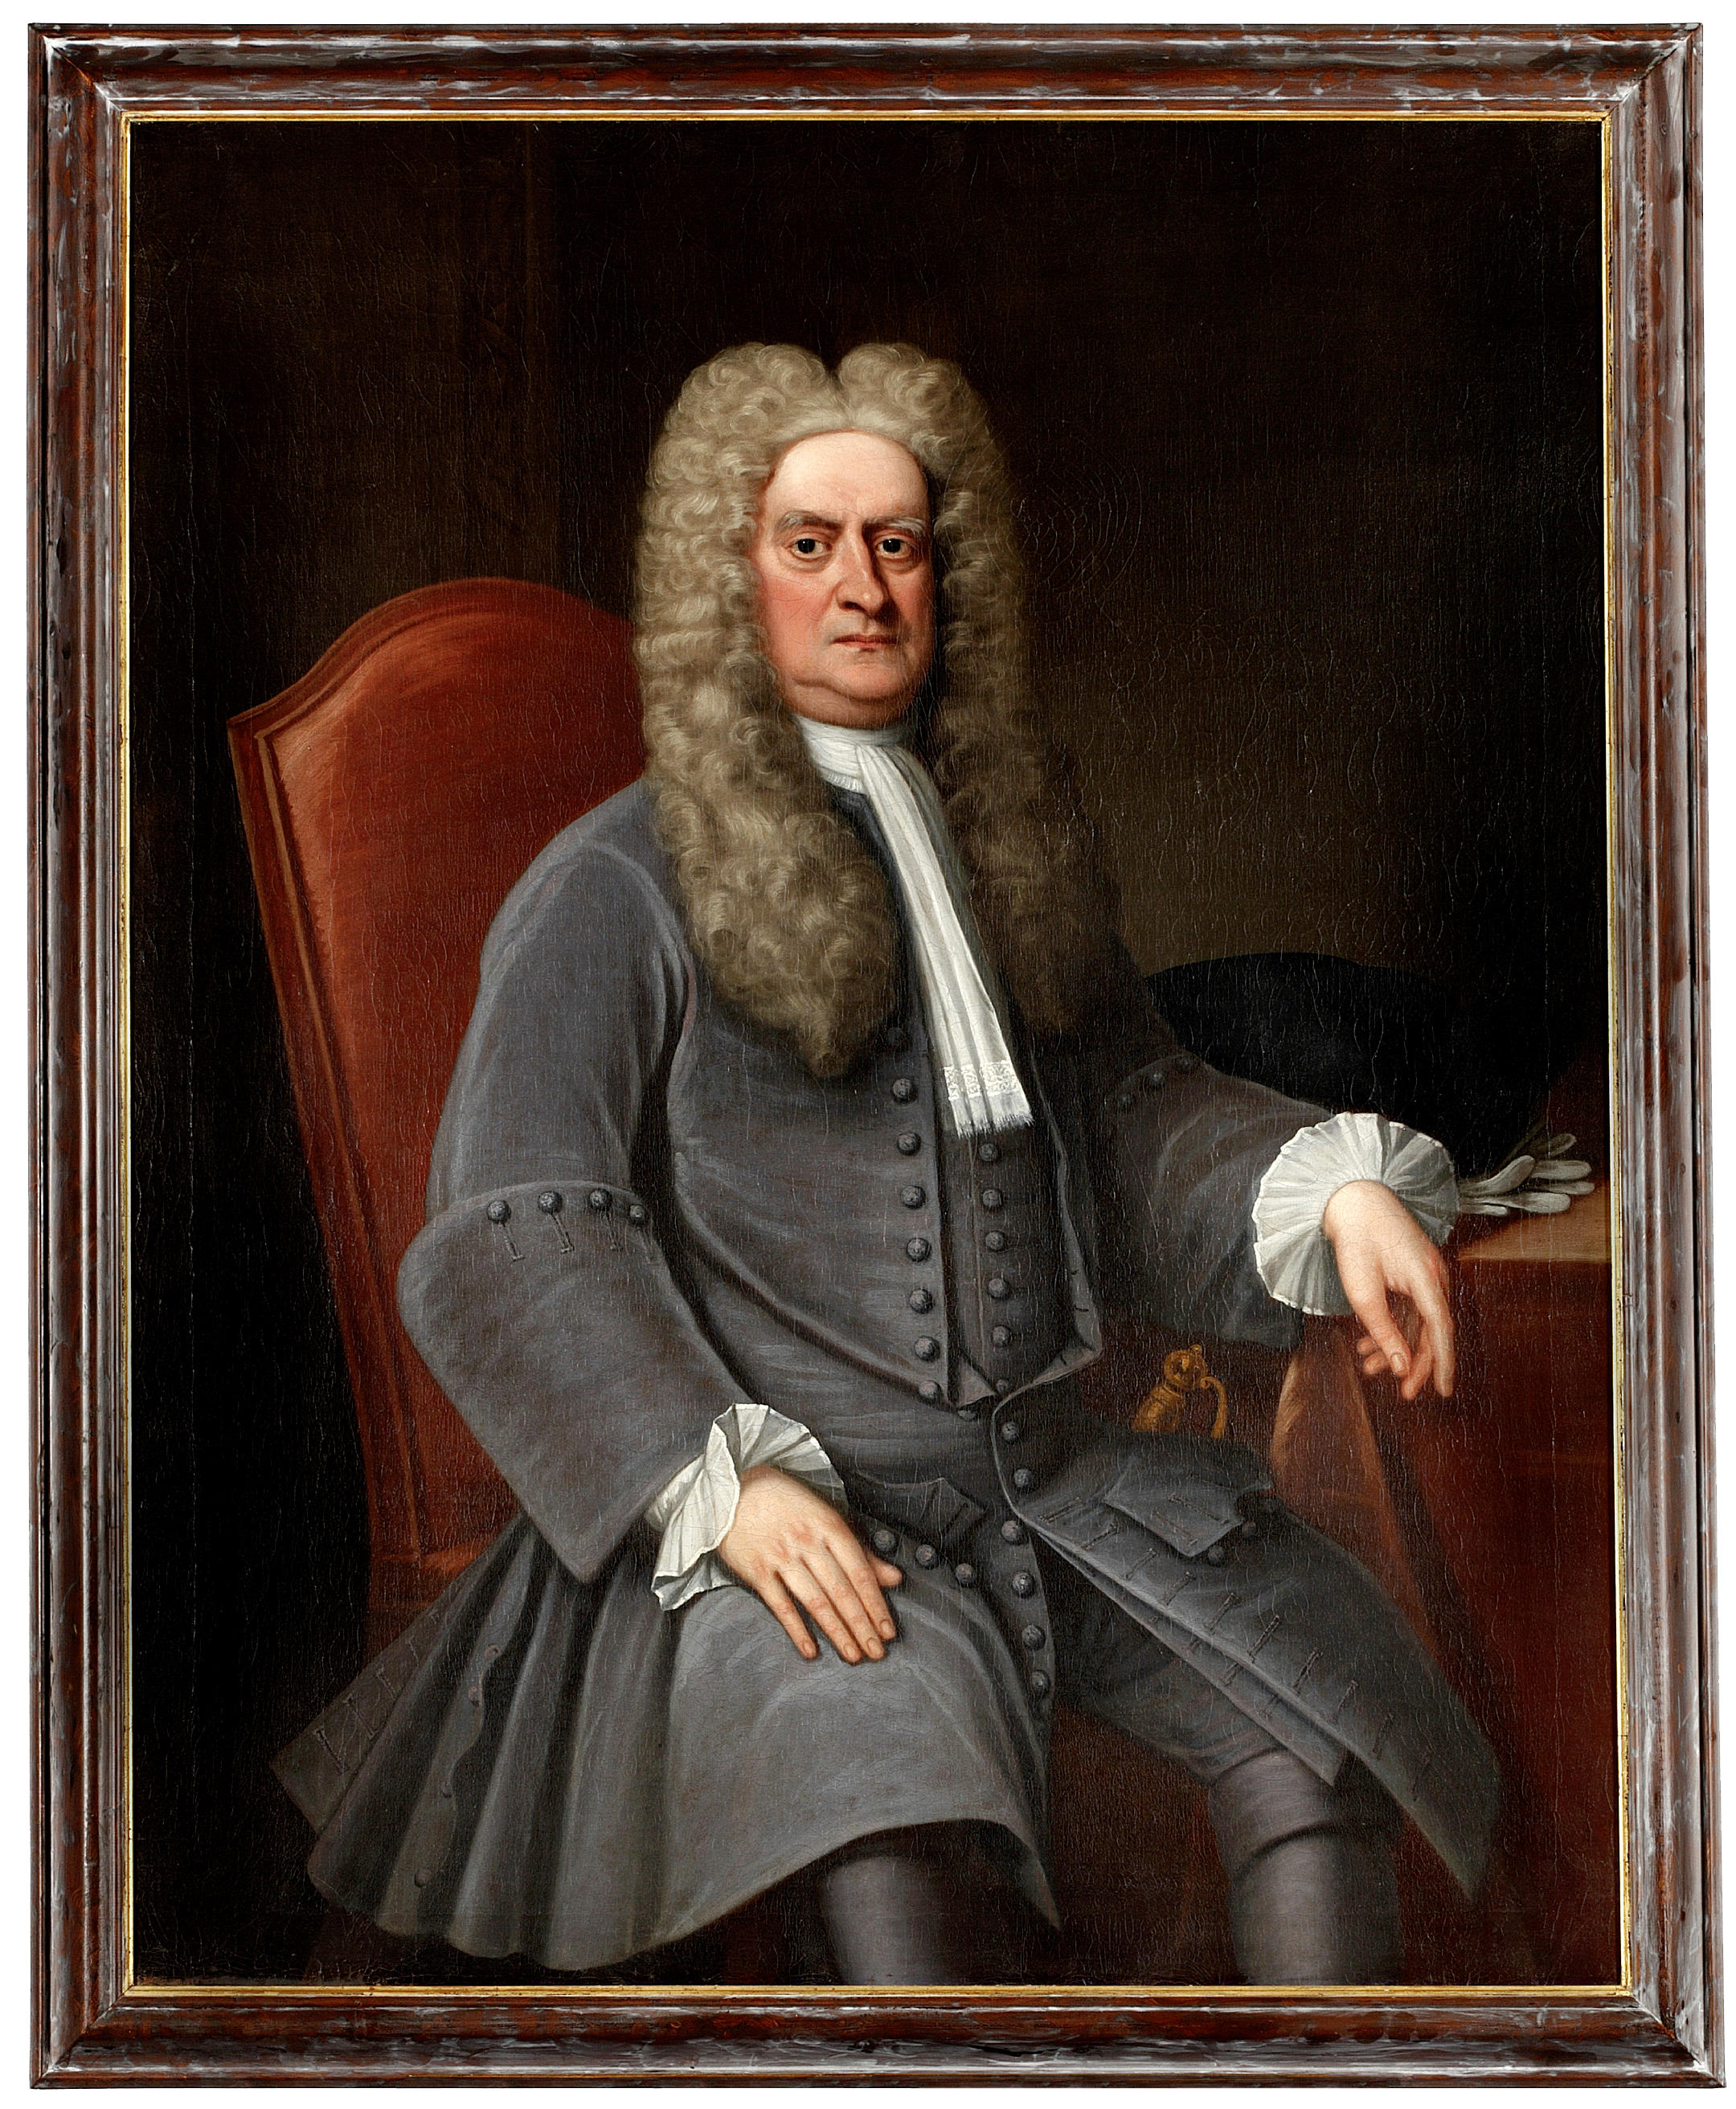 a description of sir isaac newton Newton, sir isaac (1642-1727), english natural philosopher, generally regarded as the most original and influential theorist in the history of sciencein addition to his invention of the.